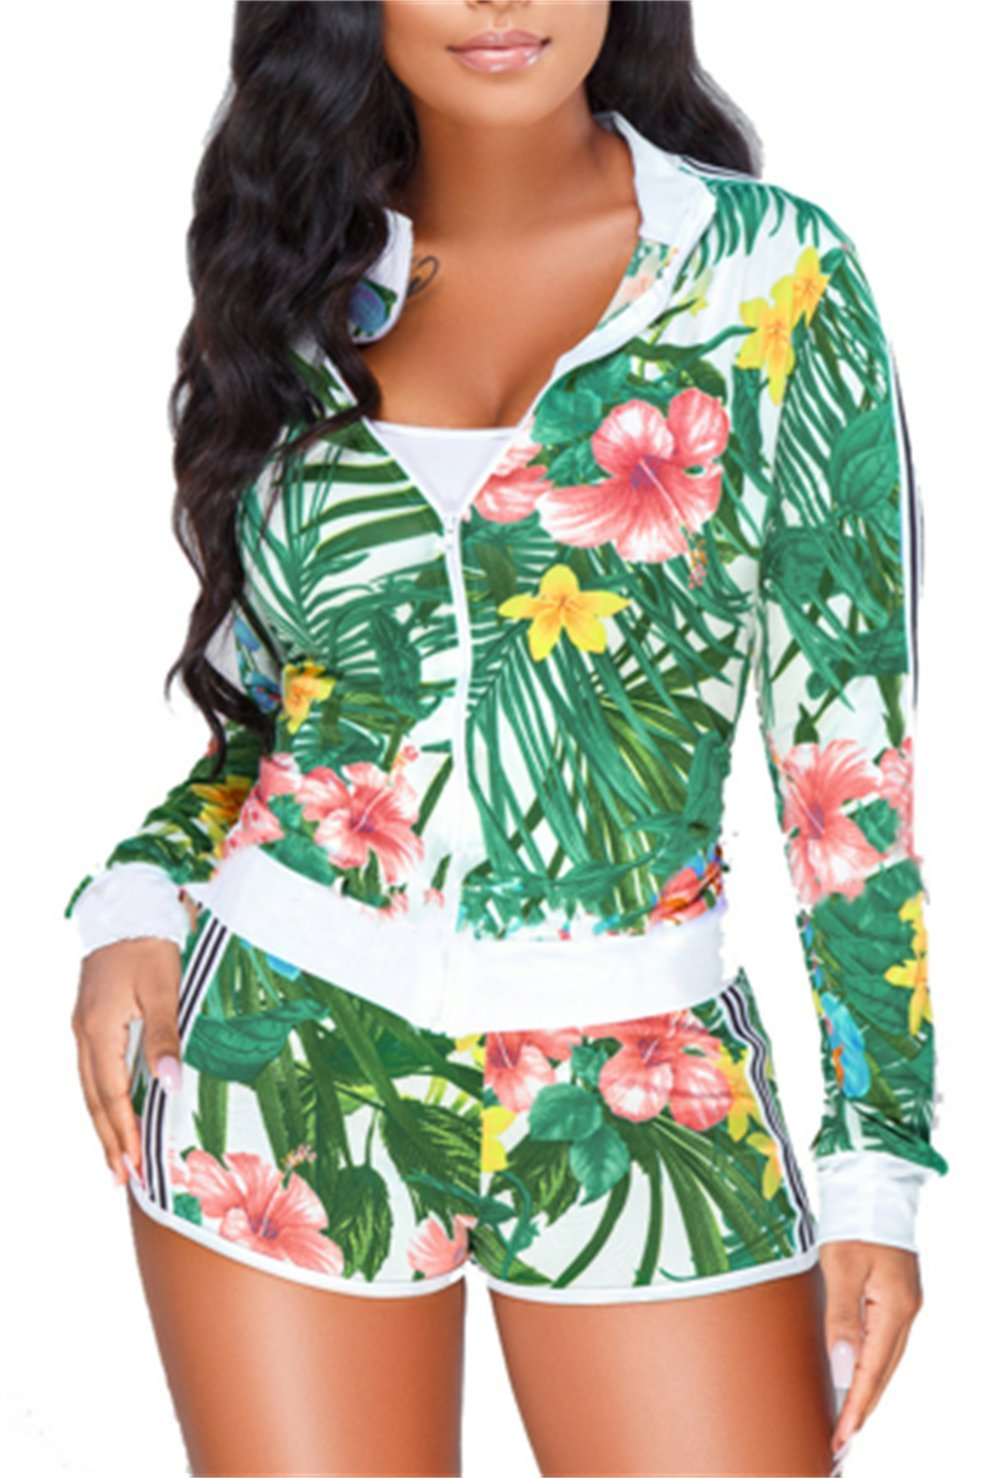 Shinfy Women's 2 Piece Outfits Deep V-Neck Floral Print Jacket with Short Pants Playsuits